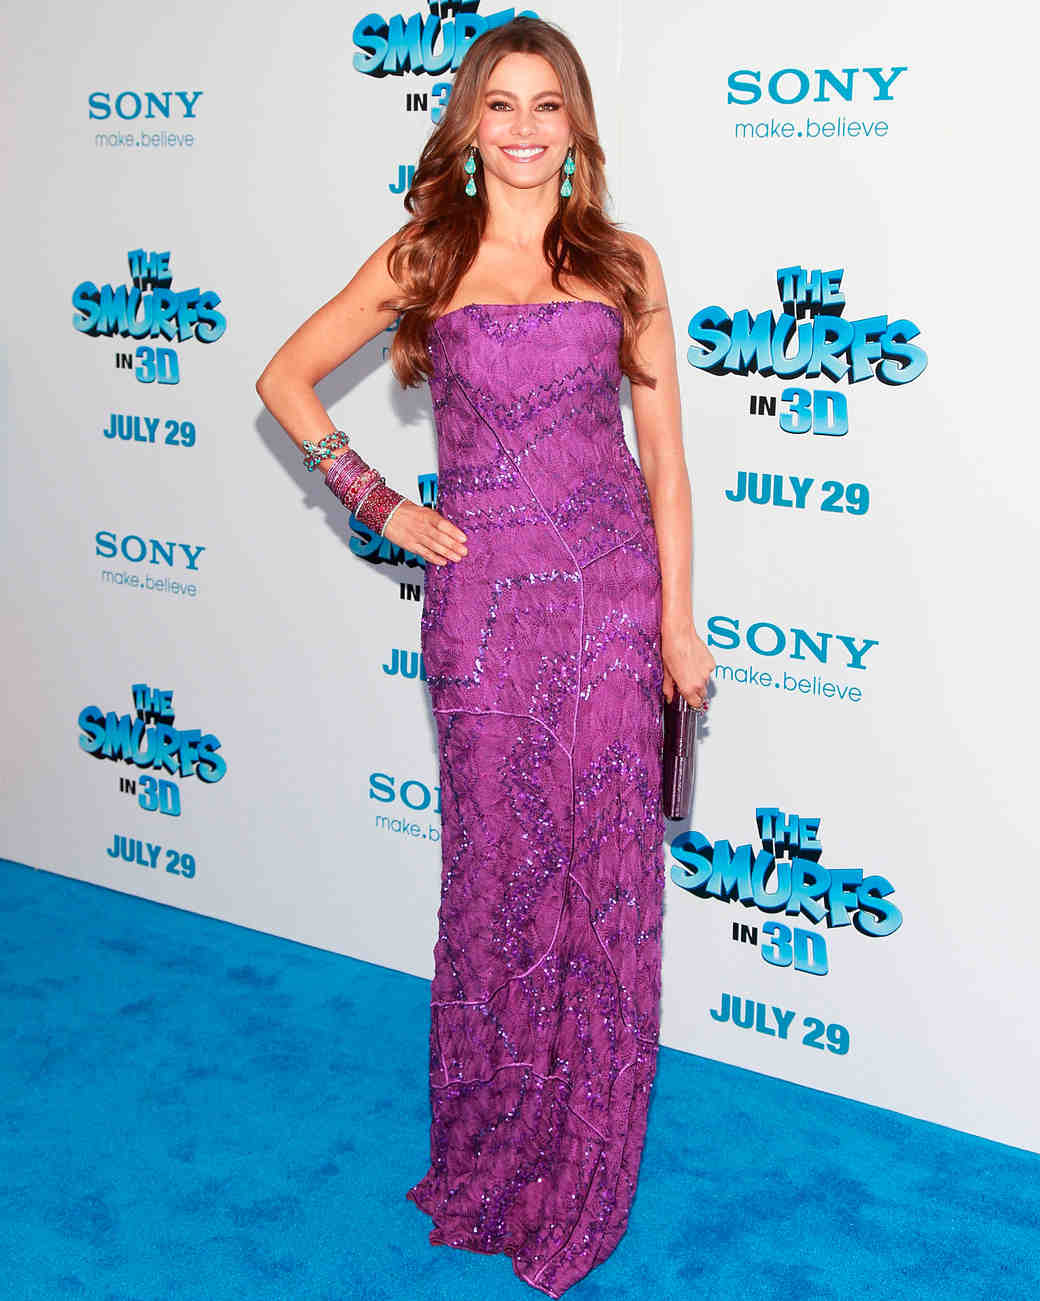 sofia-vergara-red-carpet-smurfs-purple-missoni-0815.jpg